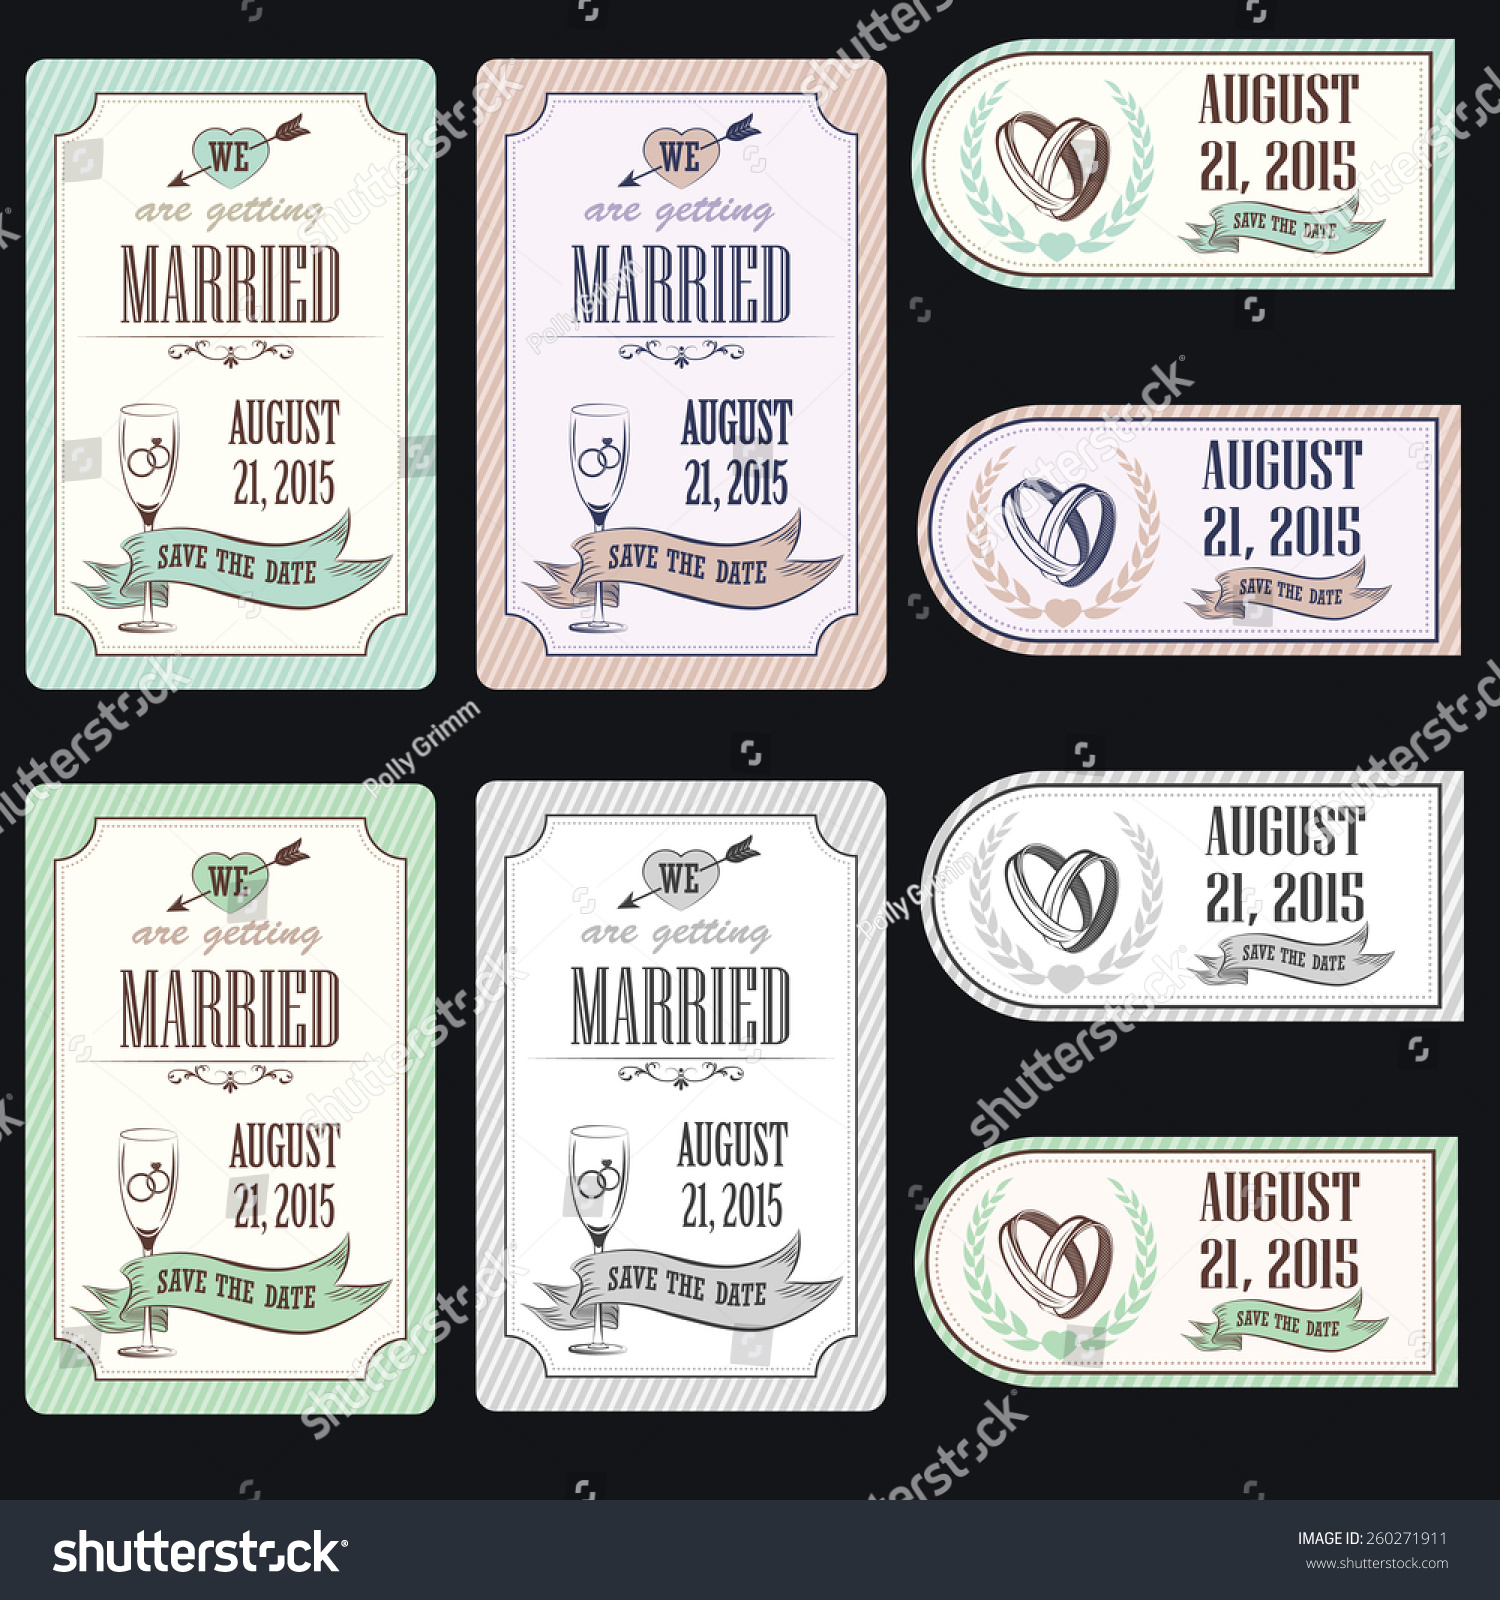 Vintage Postcard Save Date Background Wedding Stock Vector 260271911 ...